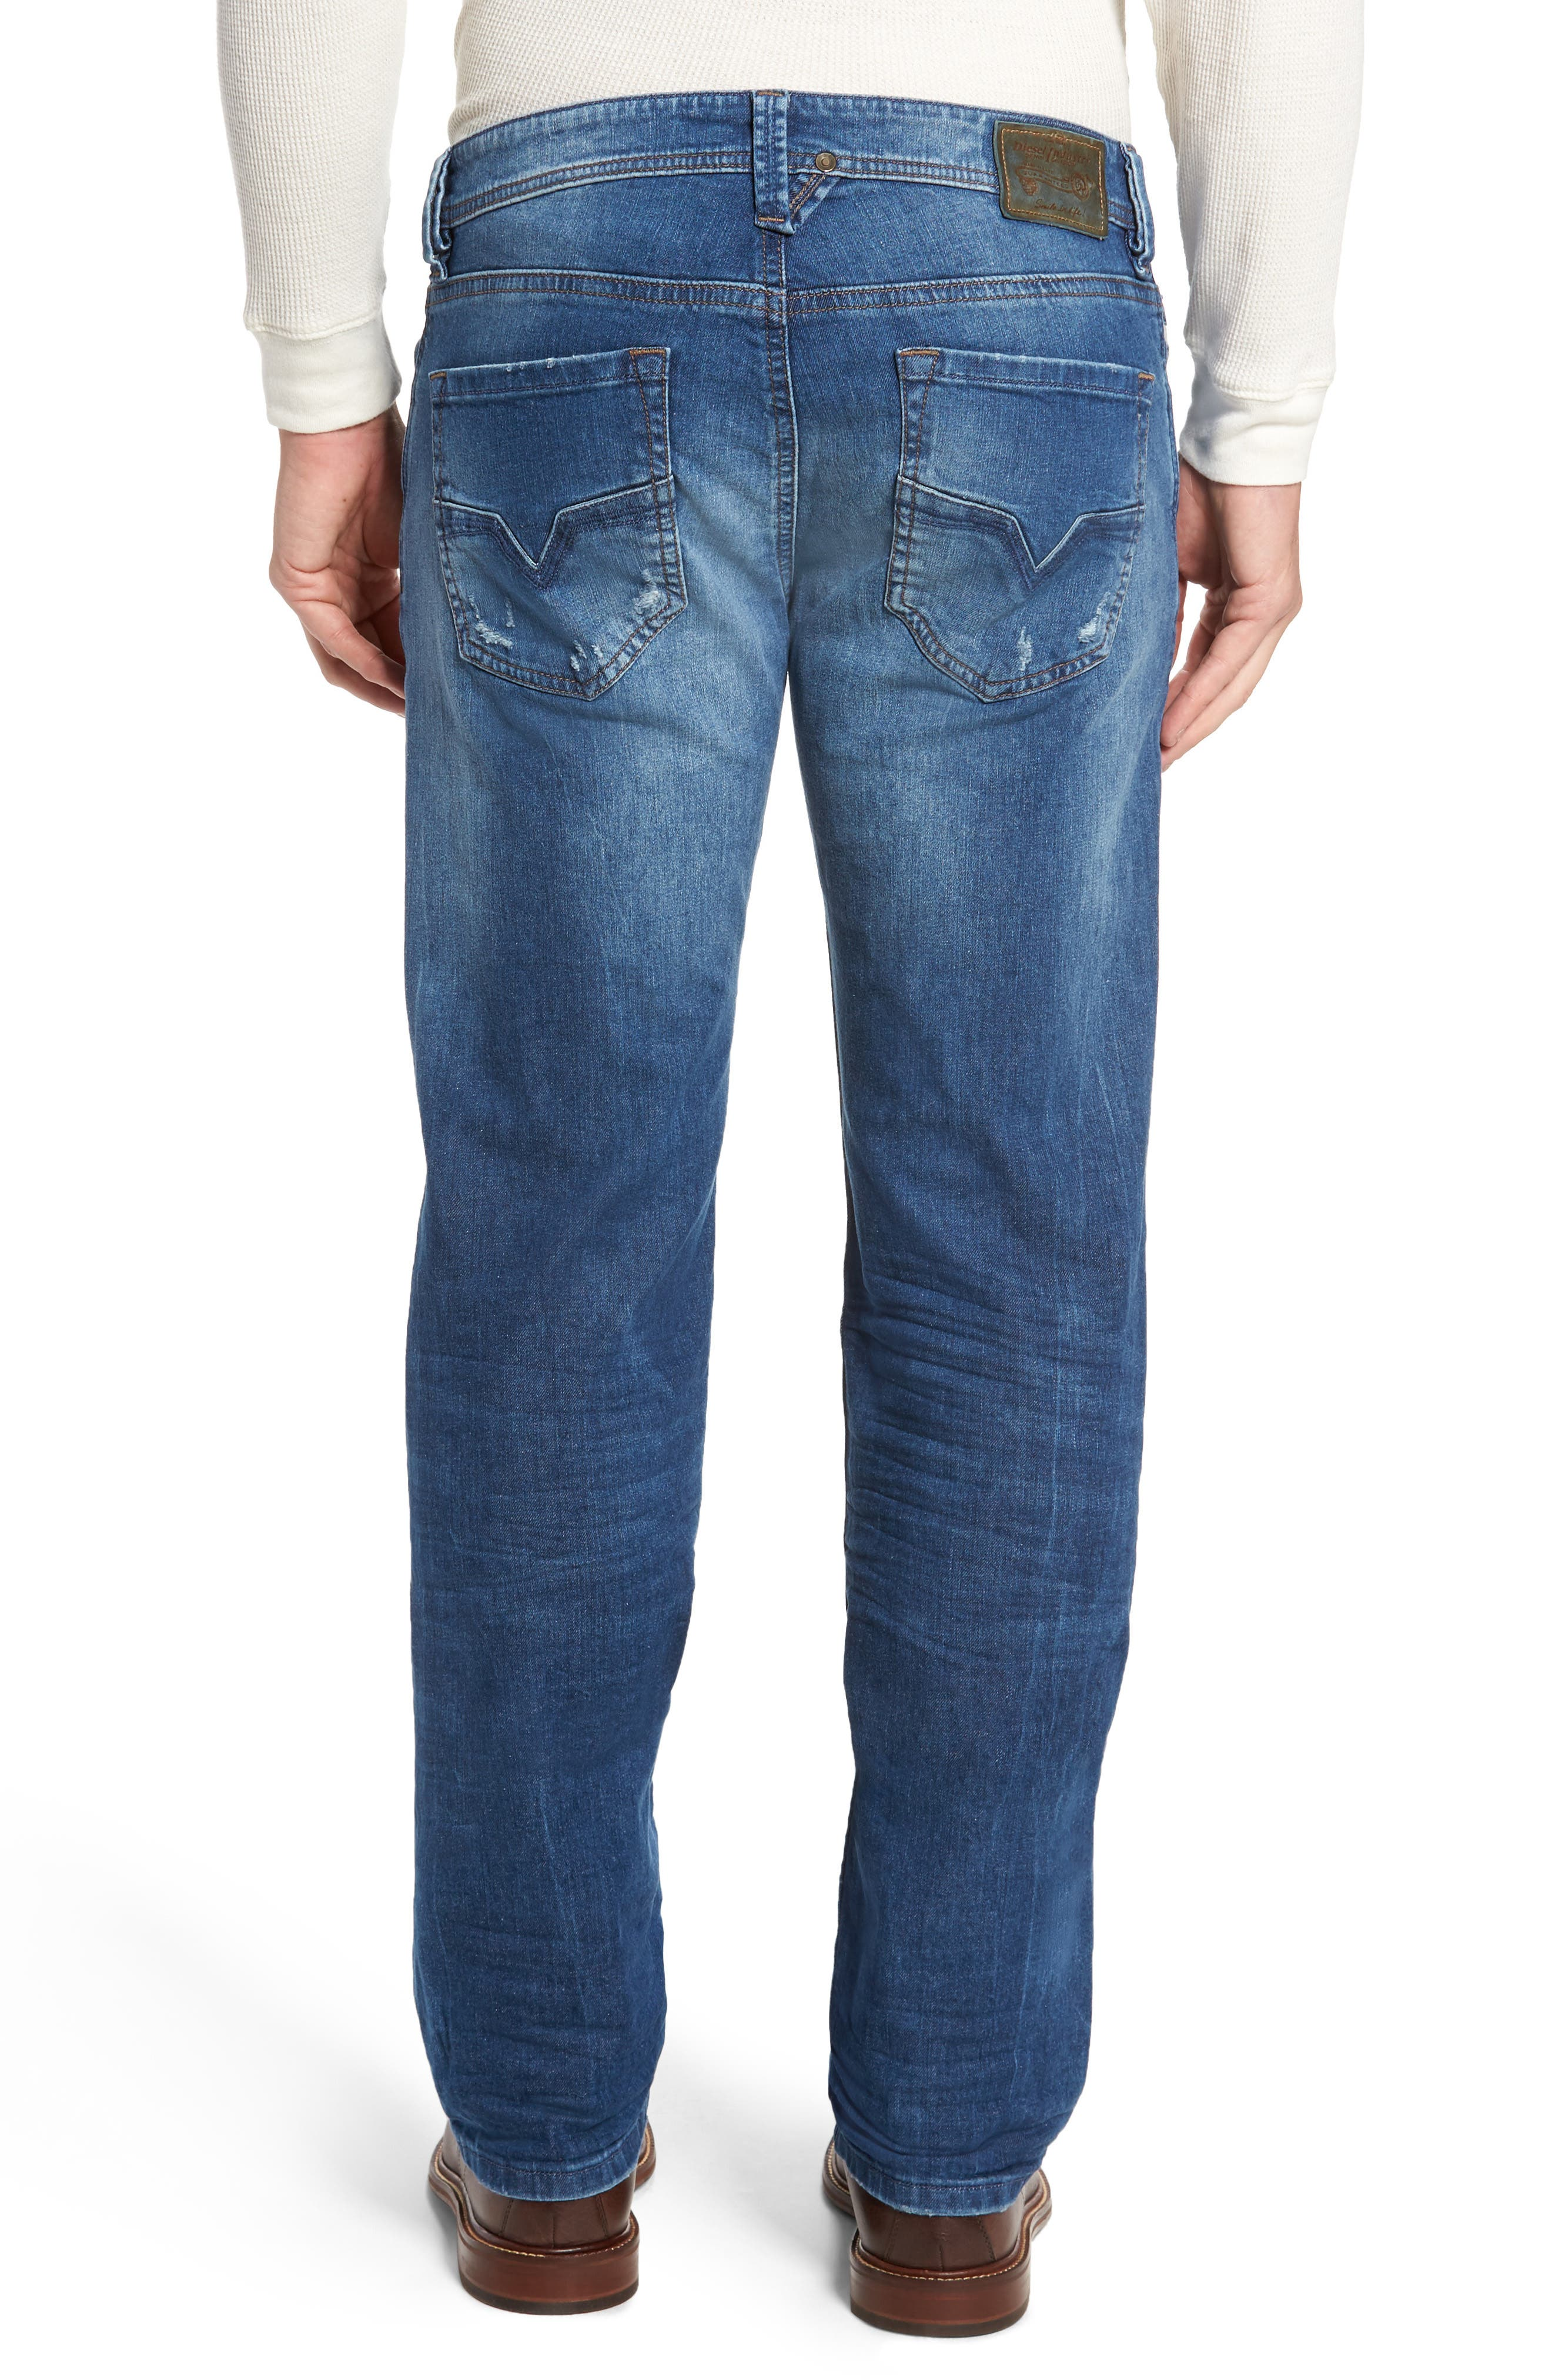 Larkee Relaxed Fit Jeans,                             Alternate thumbnail 2, color,                             C84ky